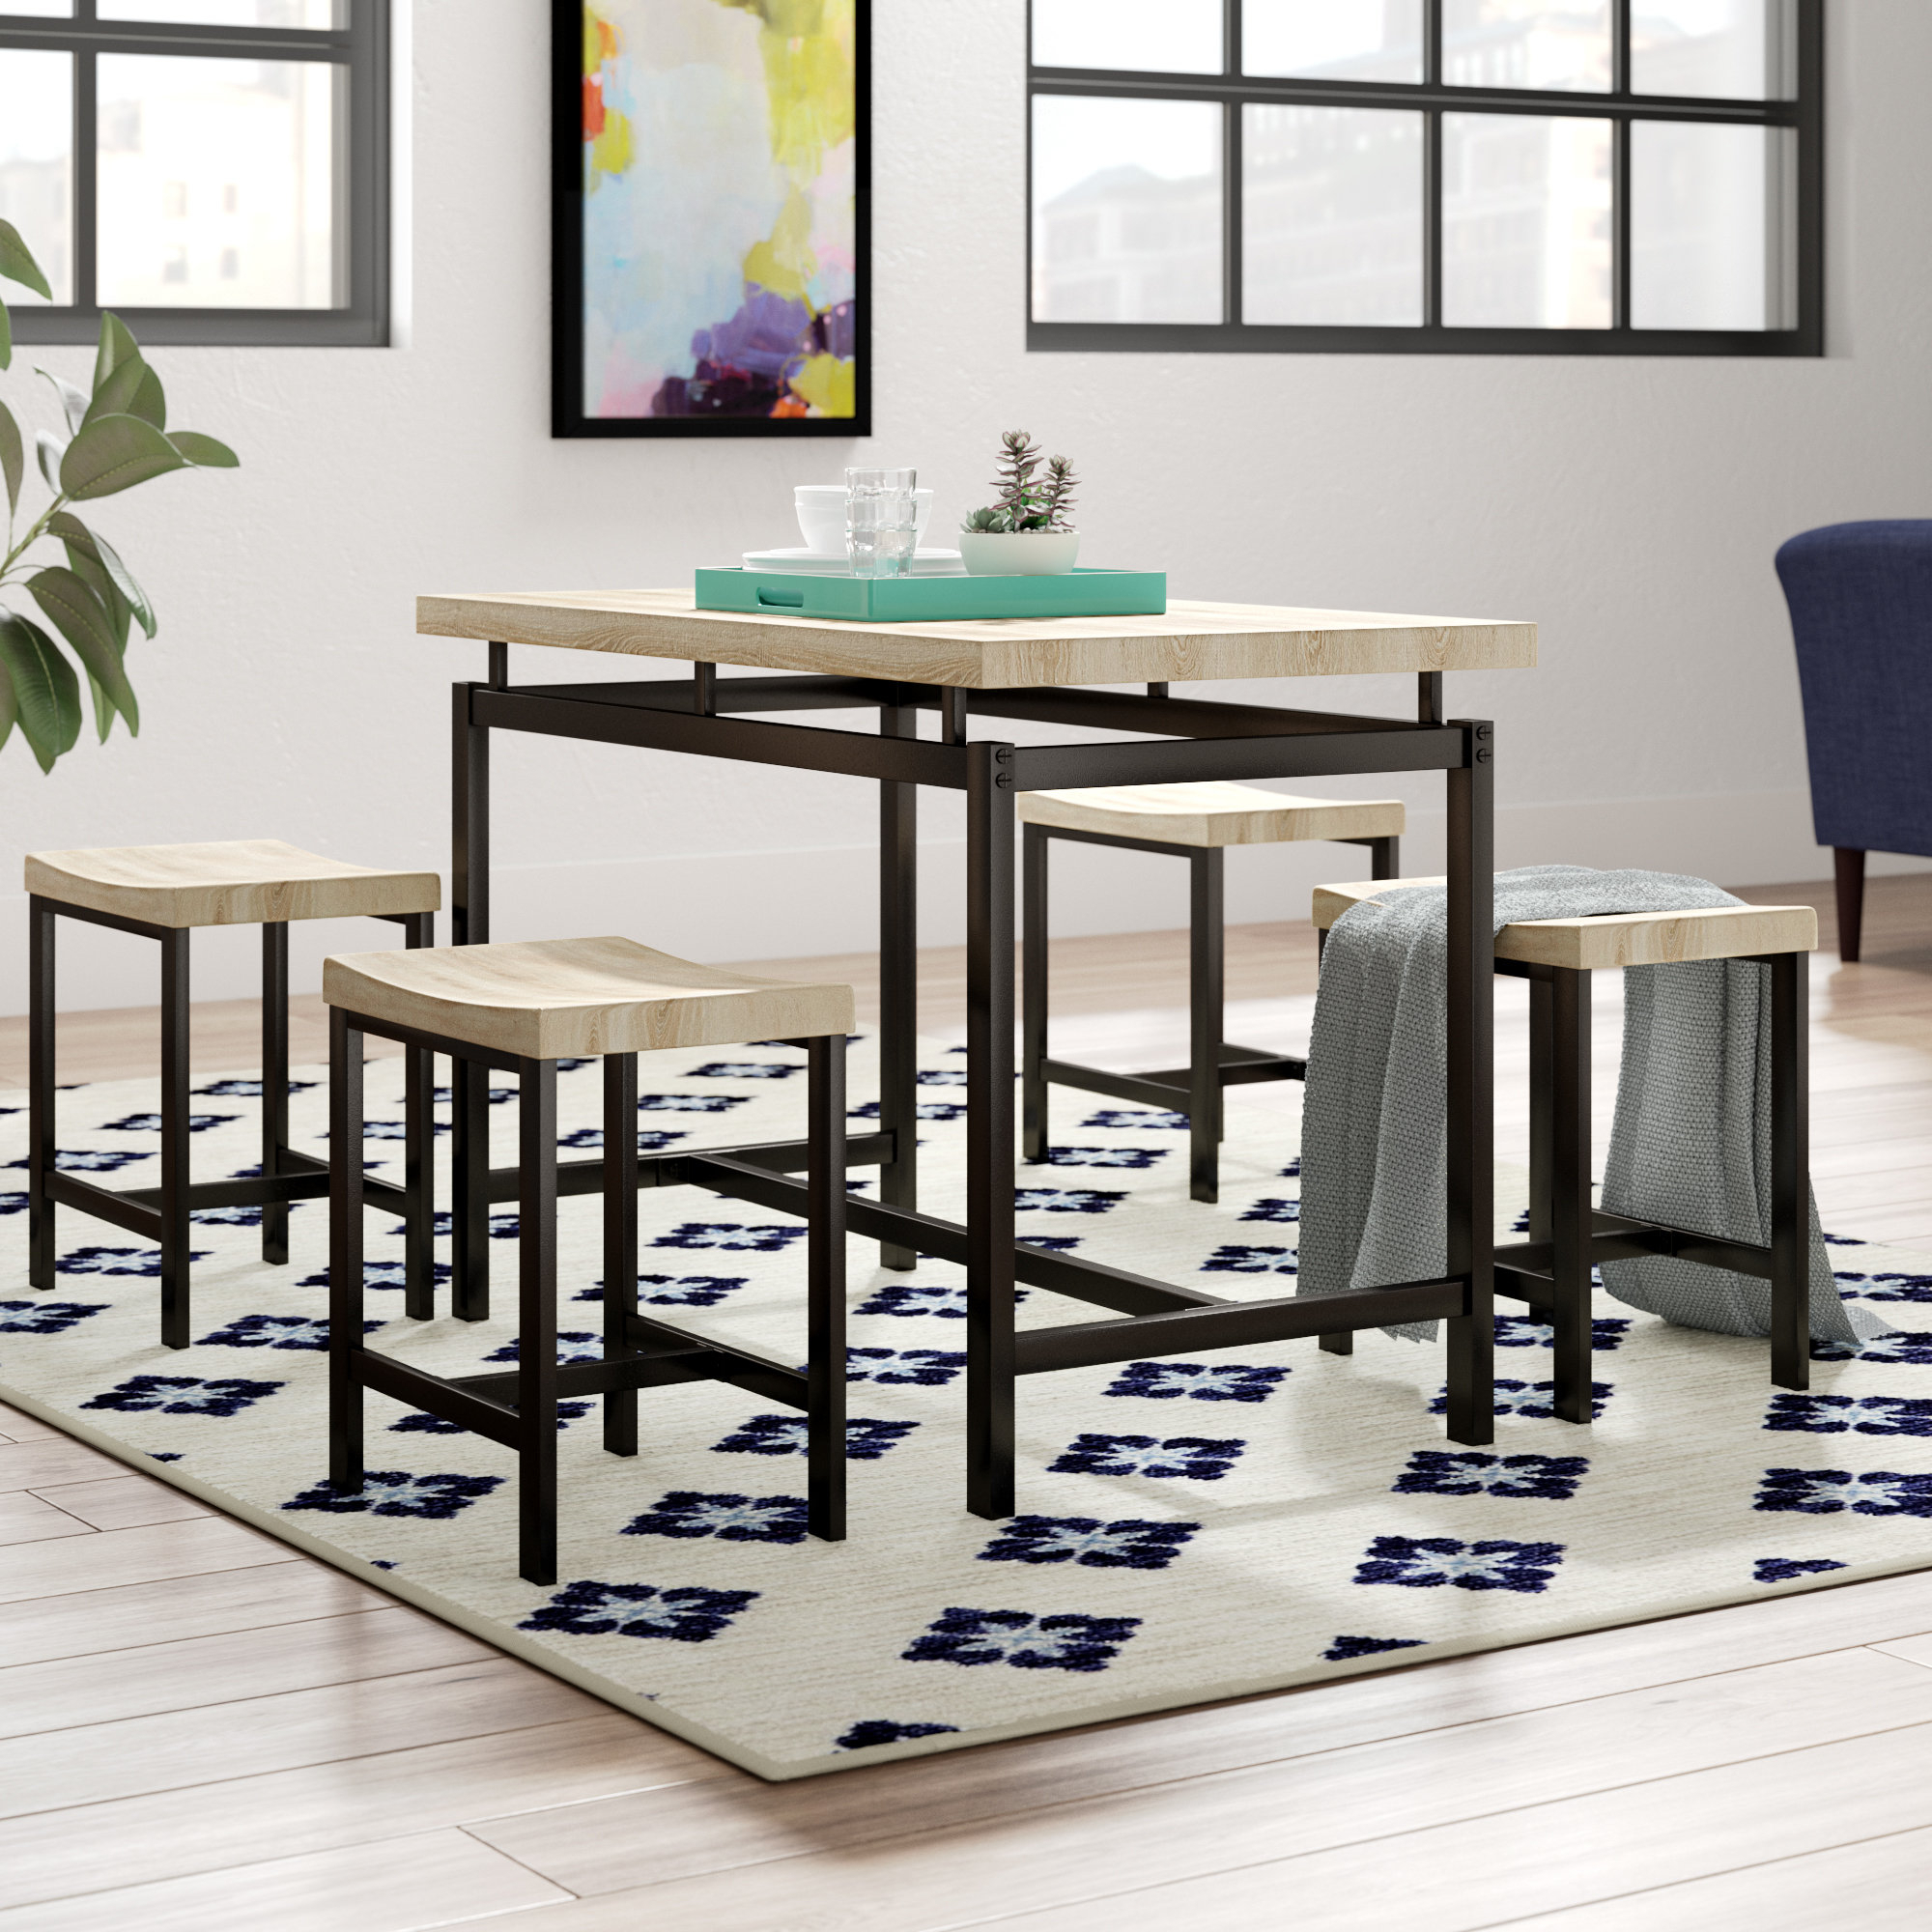 Wayfair Pertaining To Most Recently Released Middleport 5 Piece Dining Sets (View 18 of 25)